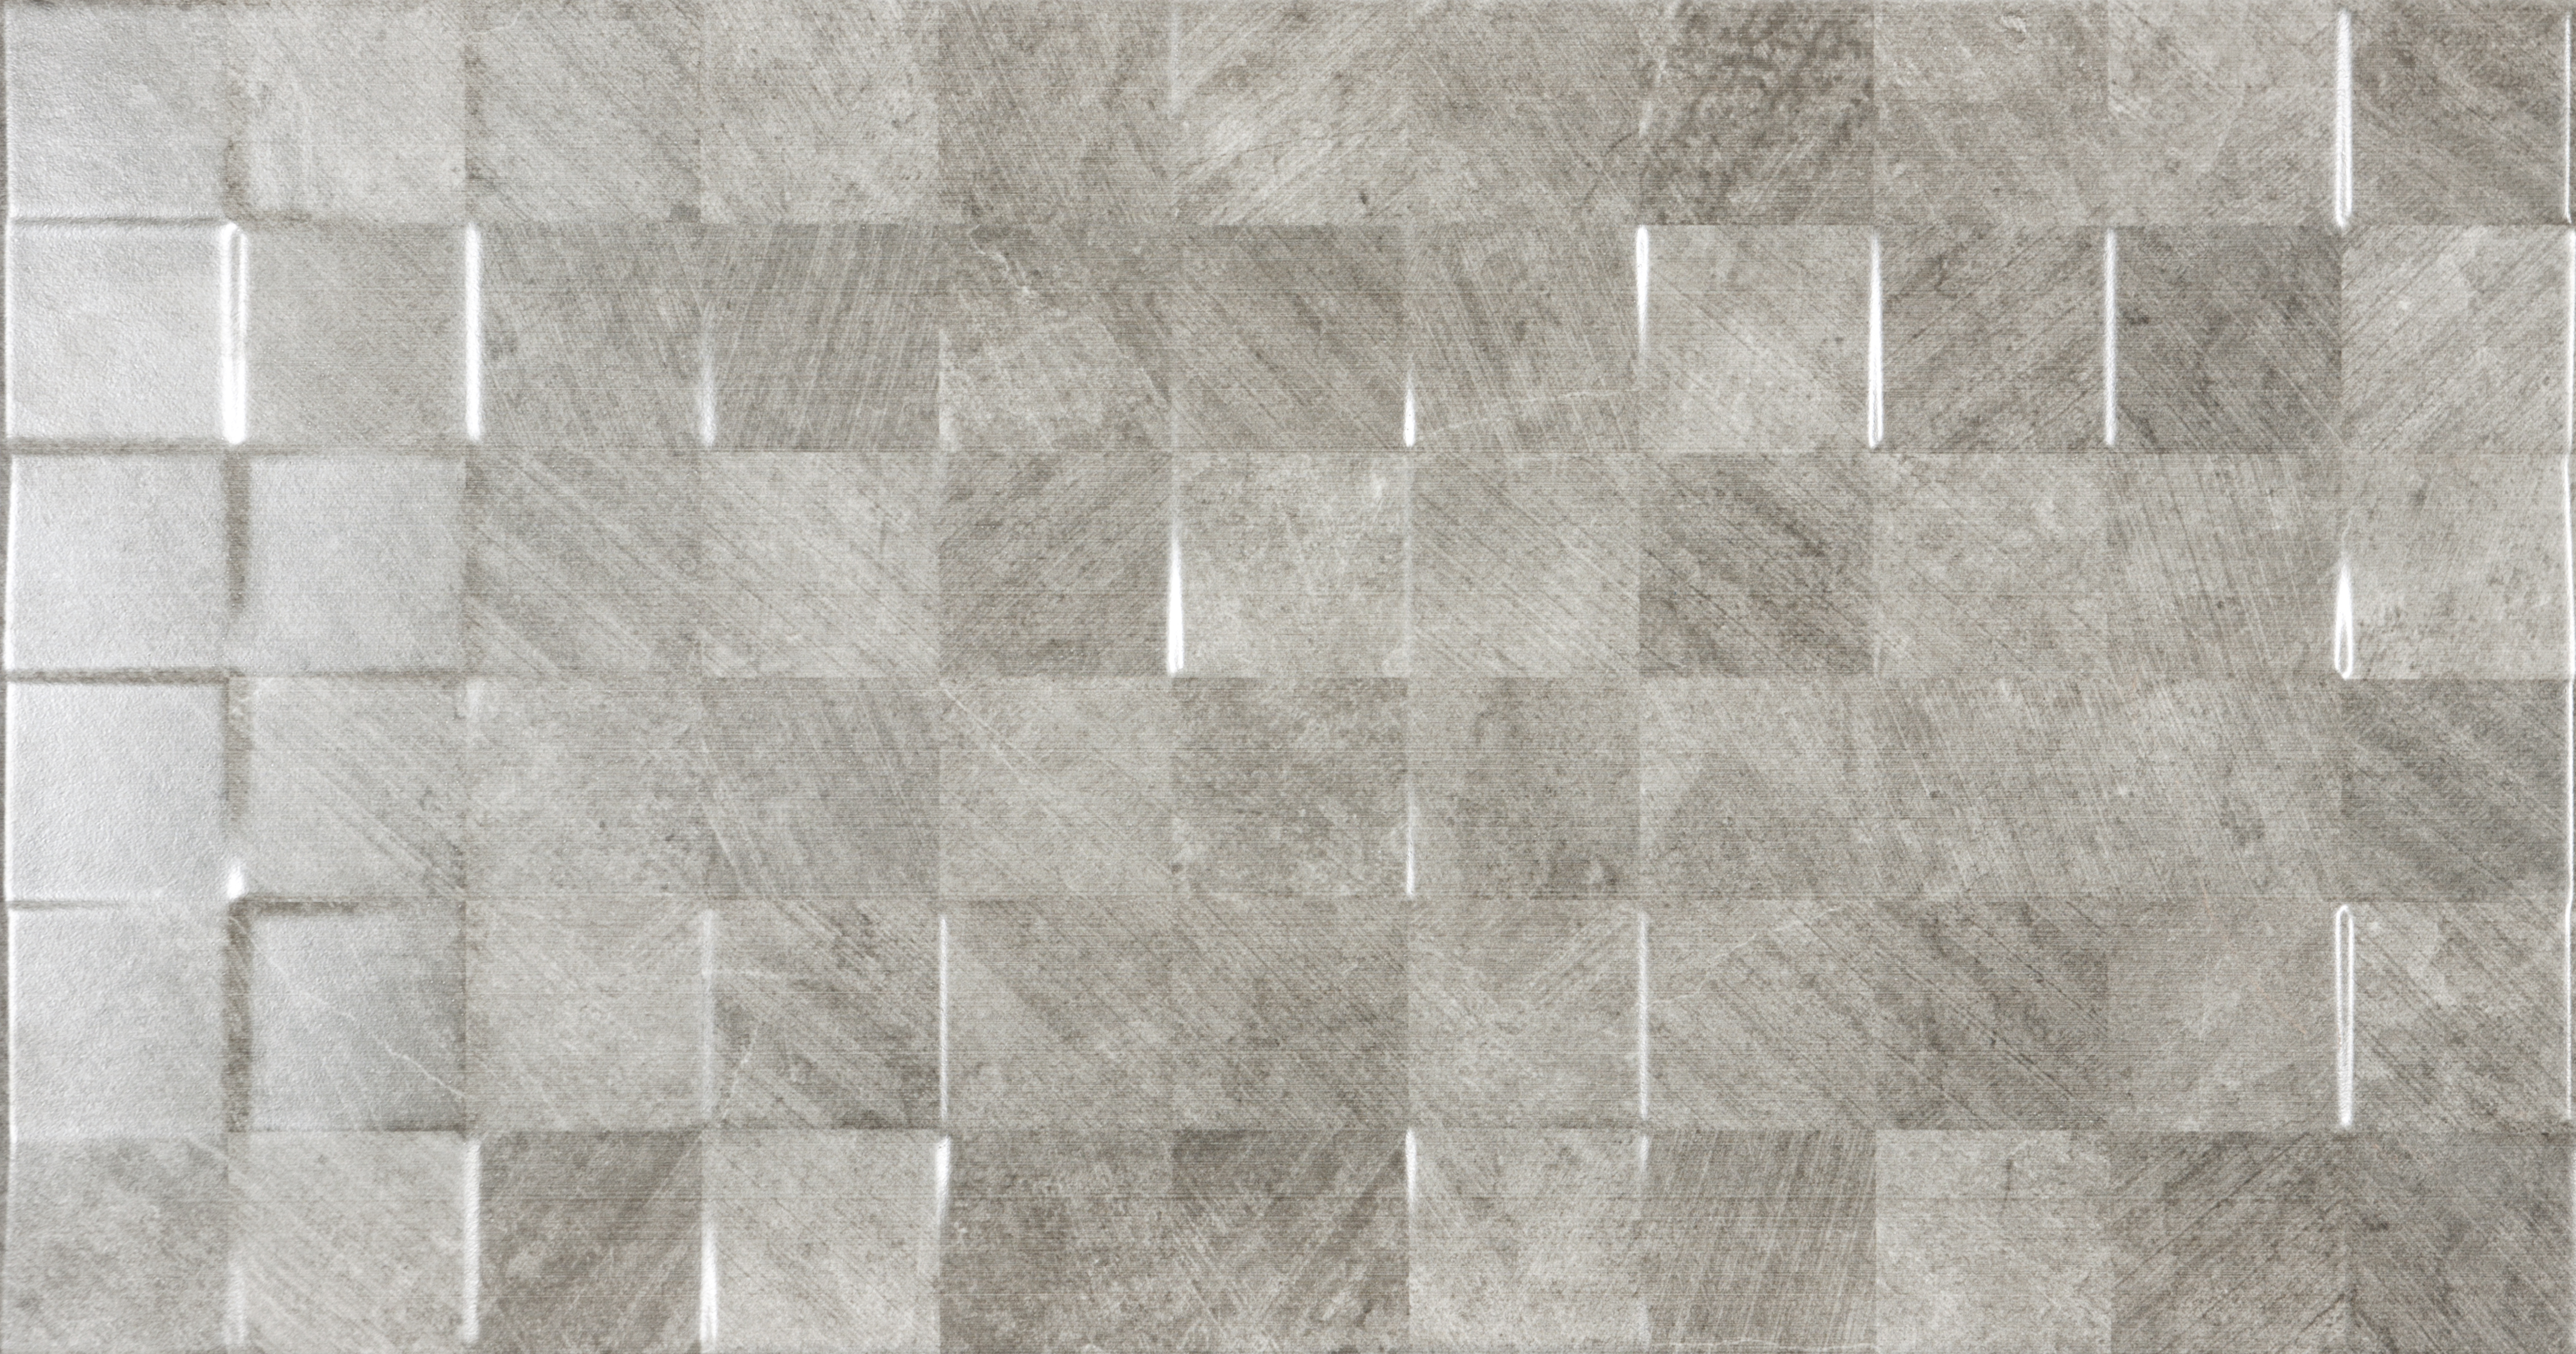 Bathroom Collection BC53 Rlv Factory Noce Wall Tiles